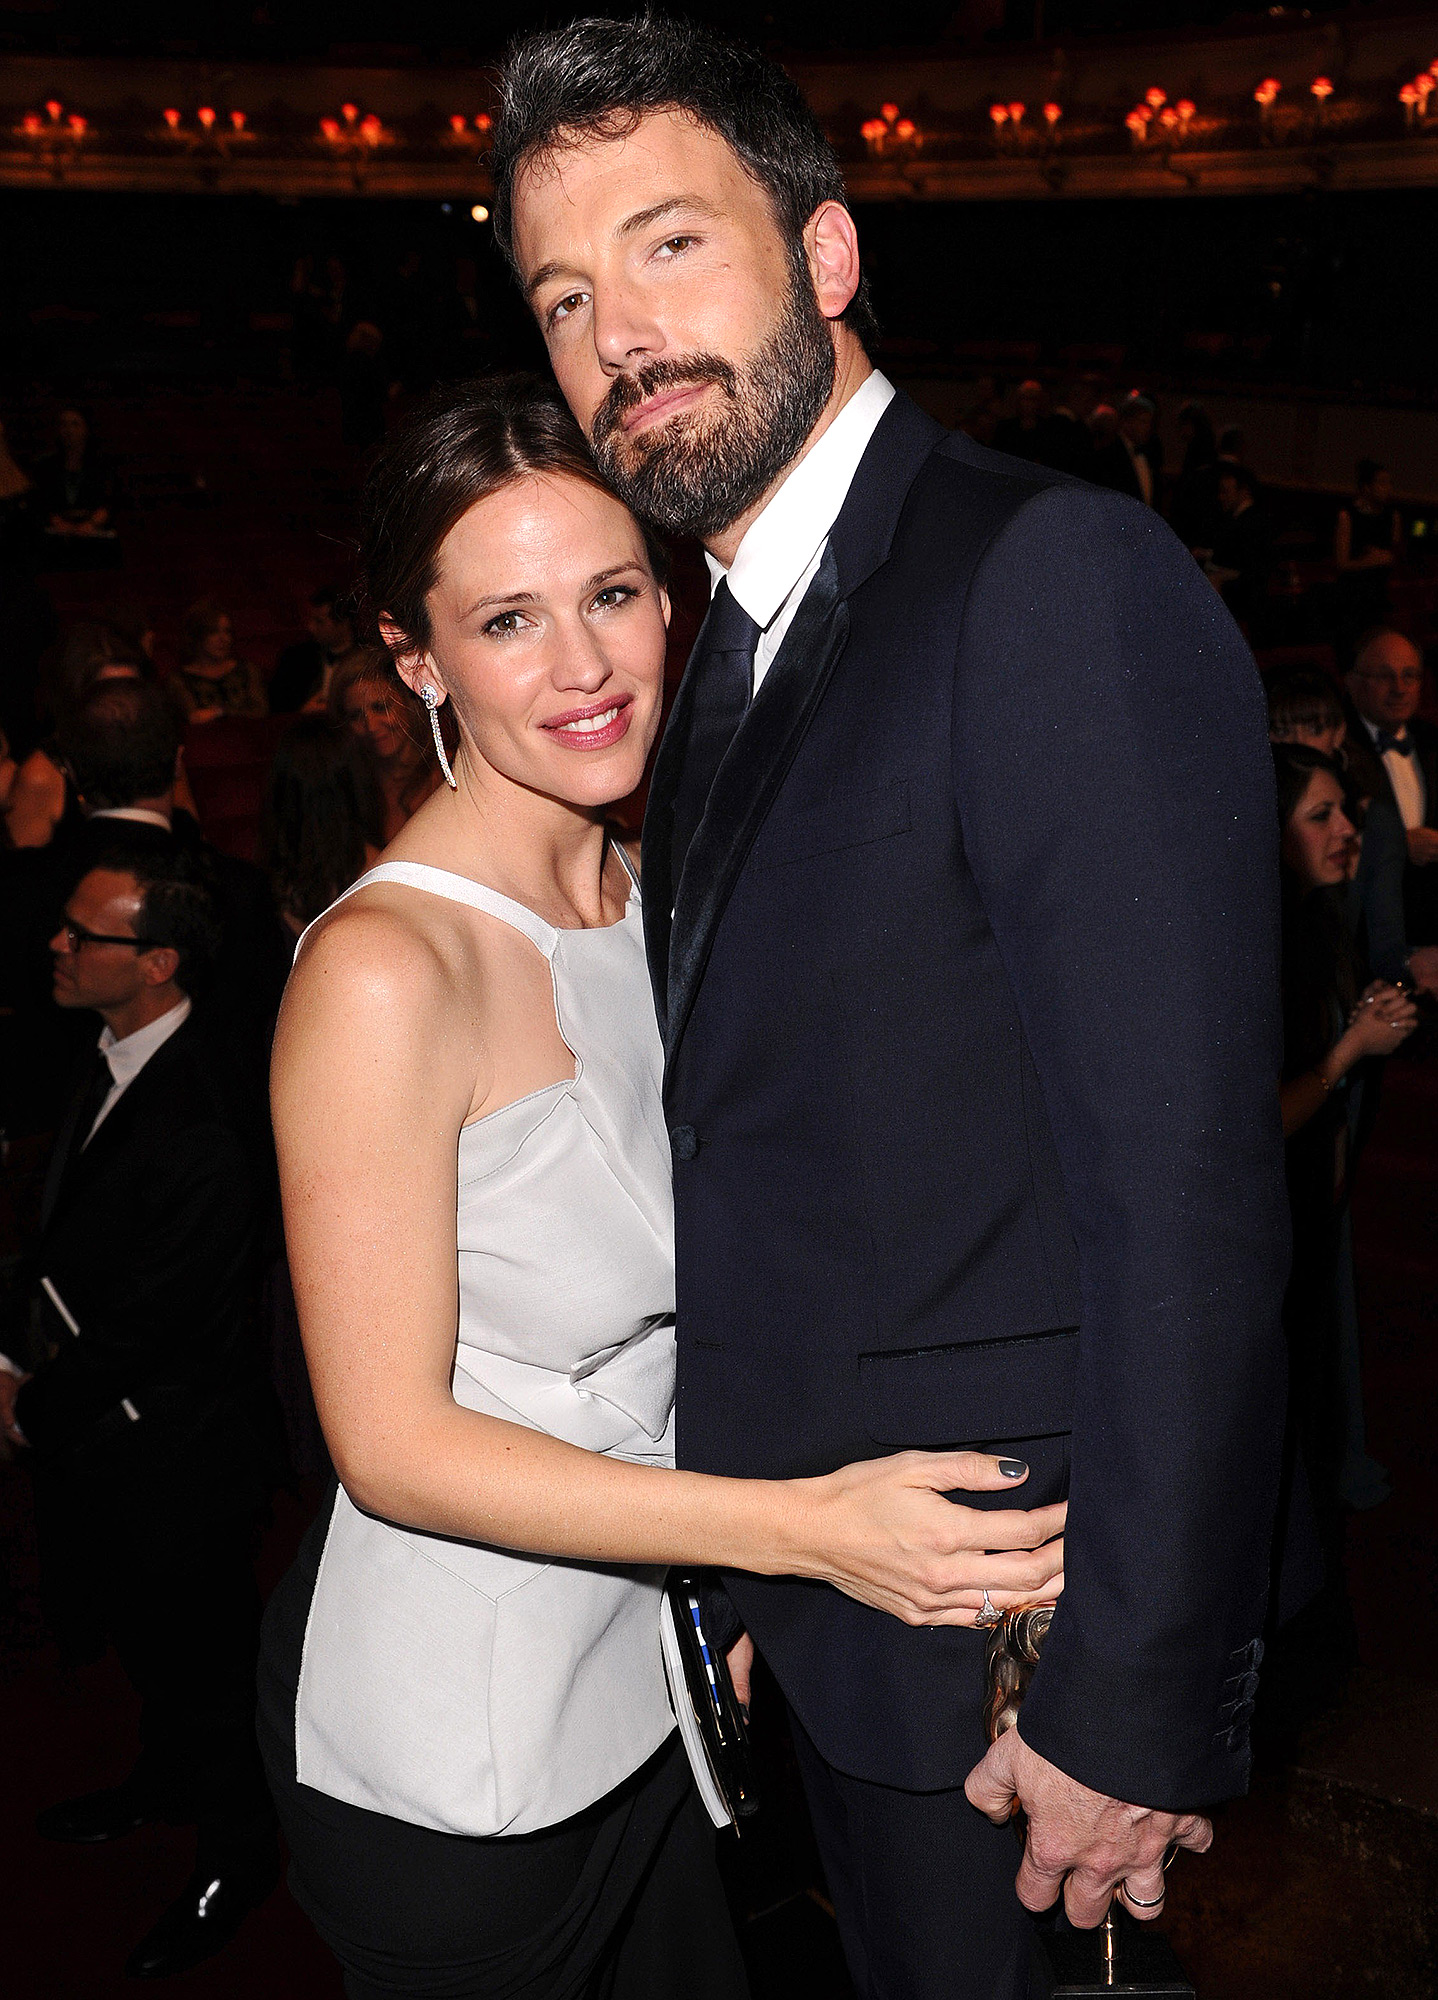 Jennifer Garner and Ben Affleck (2015)